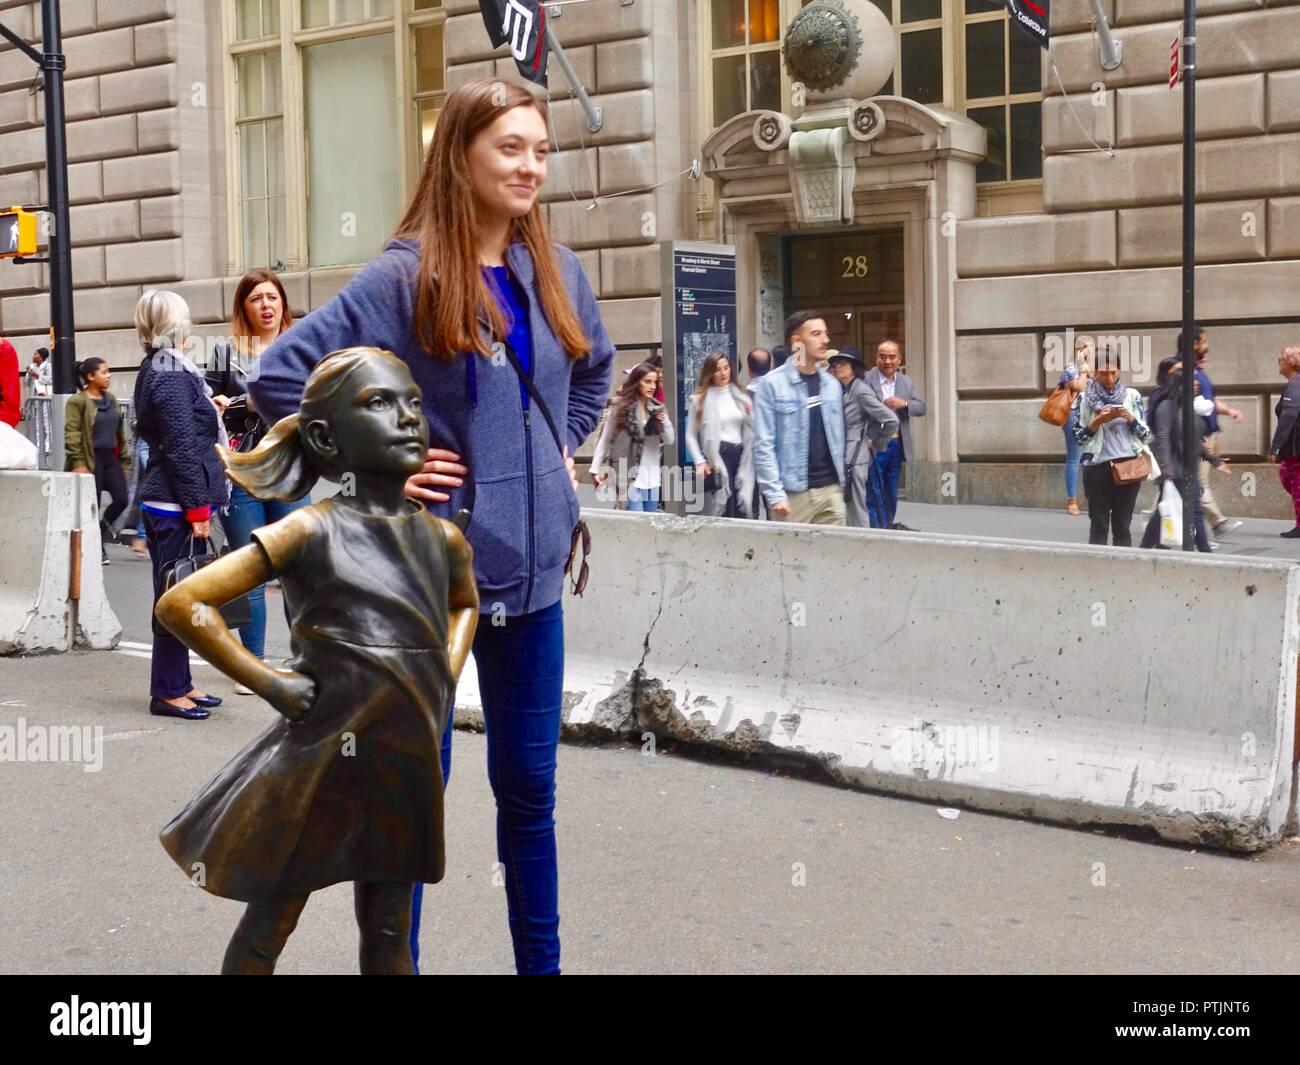 Fearless Girl of Wall Street, New York, NY, USA. - Stock Image